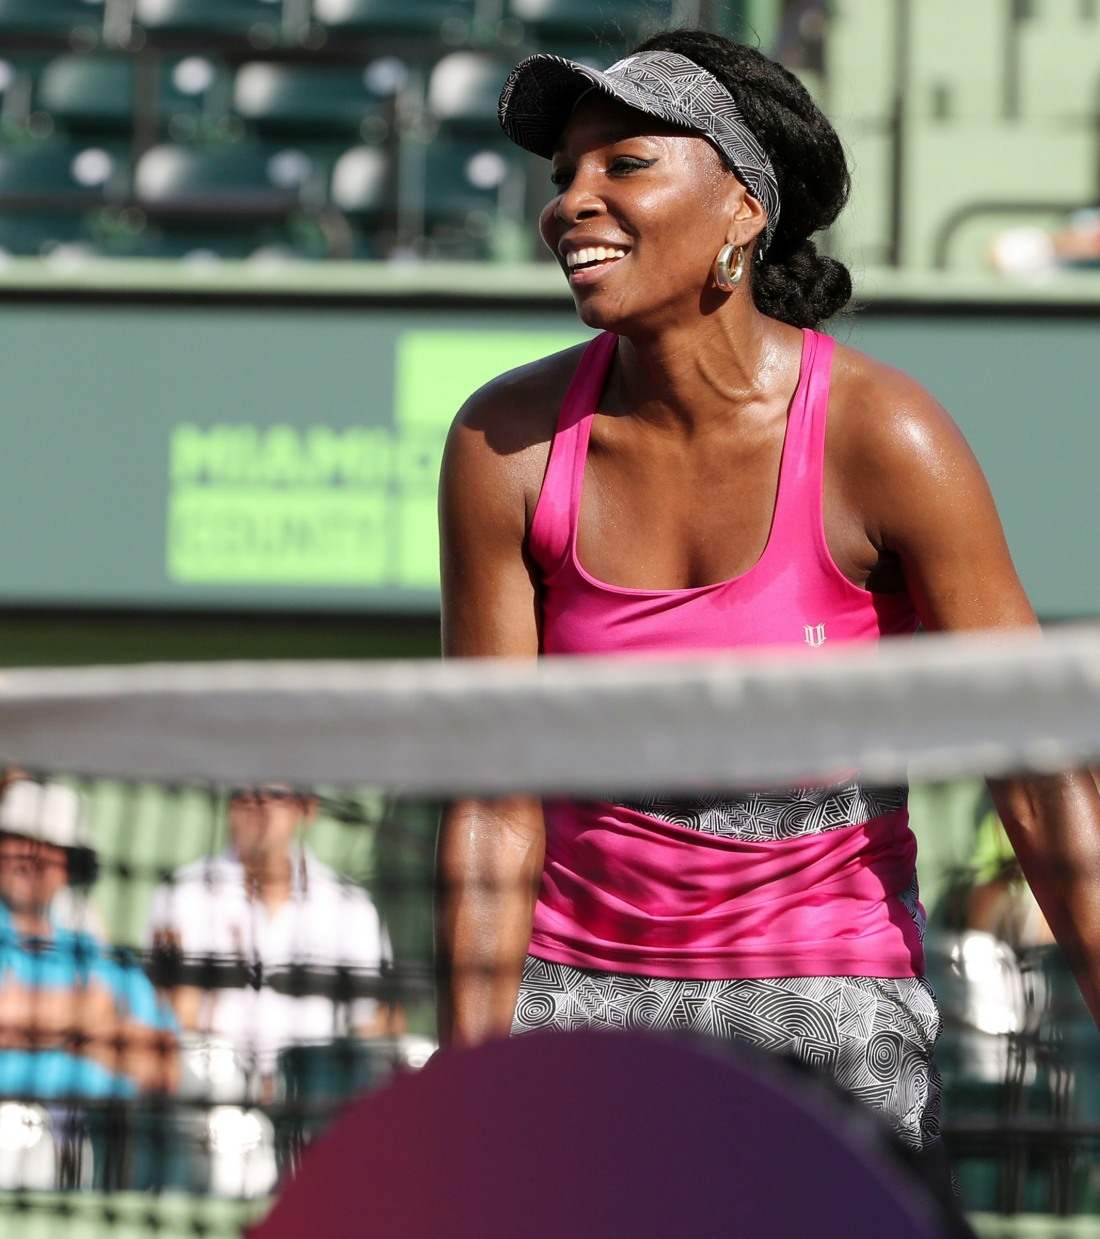 Venus Williams gives it her all during the Miami Open